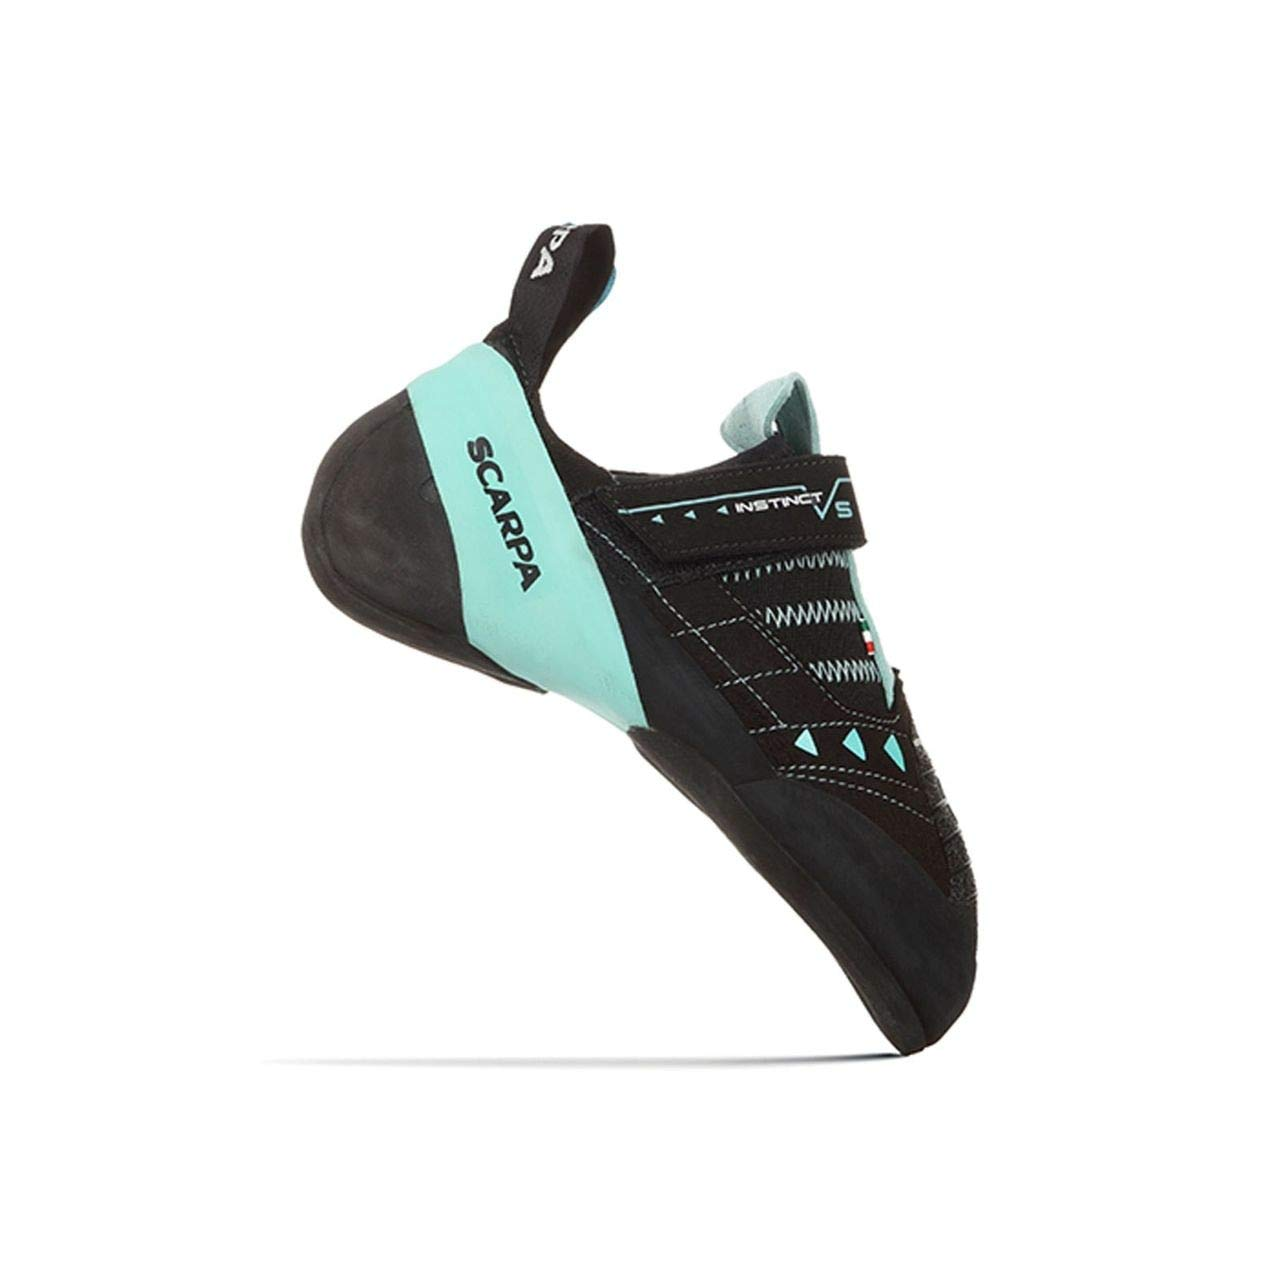 SCARPA Instinct VS Climbing Shoe - Women's Black/Aqua 40 by SCARPA